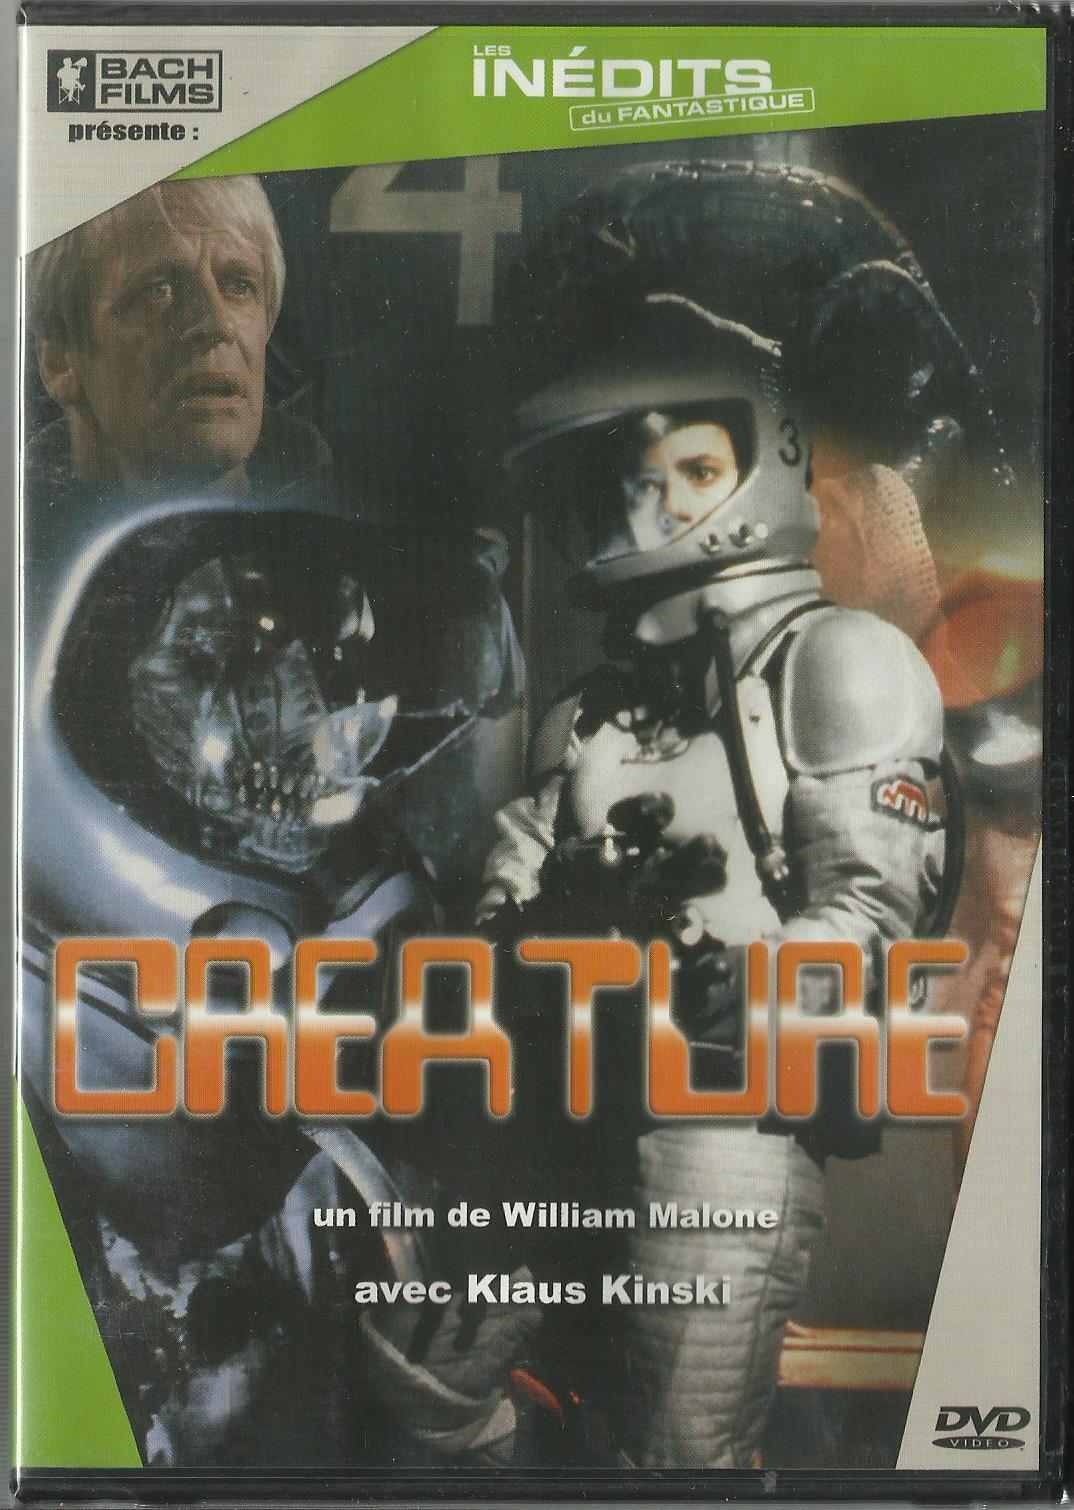 Image du DVD du film Créature de William Malone